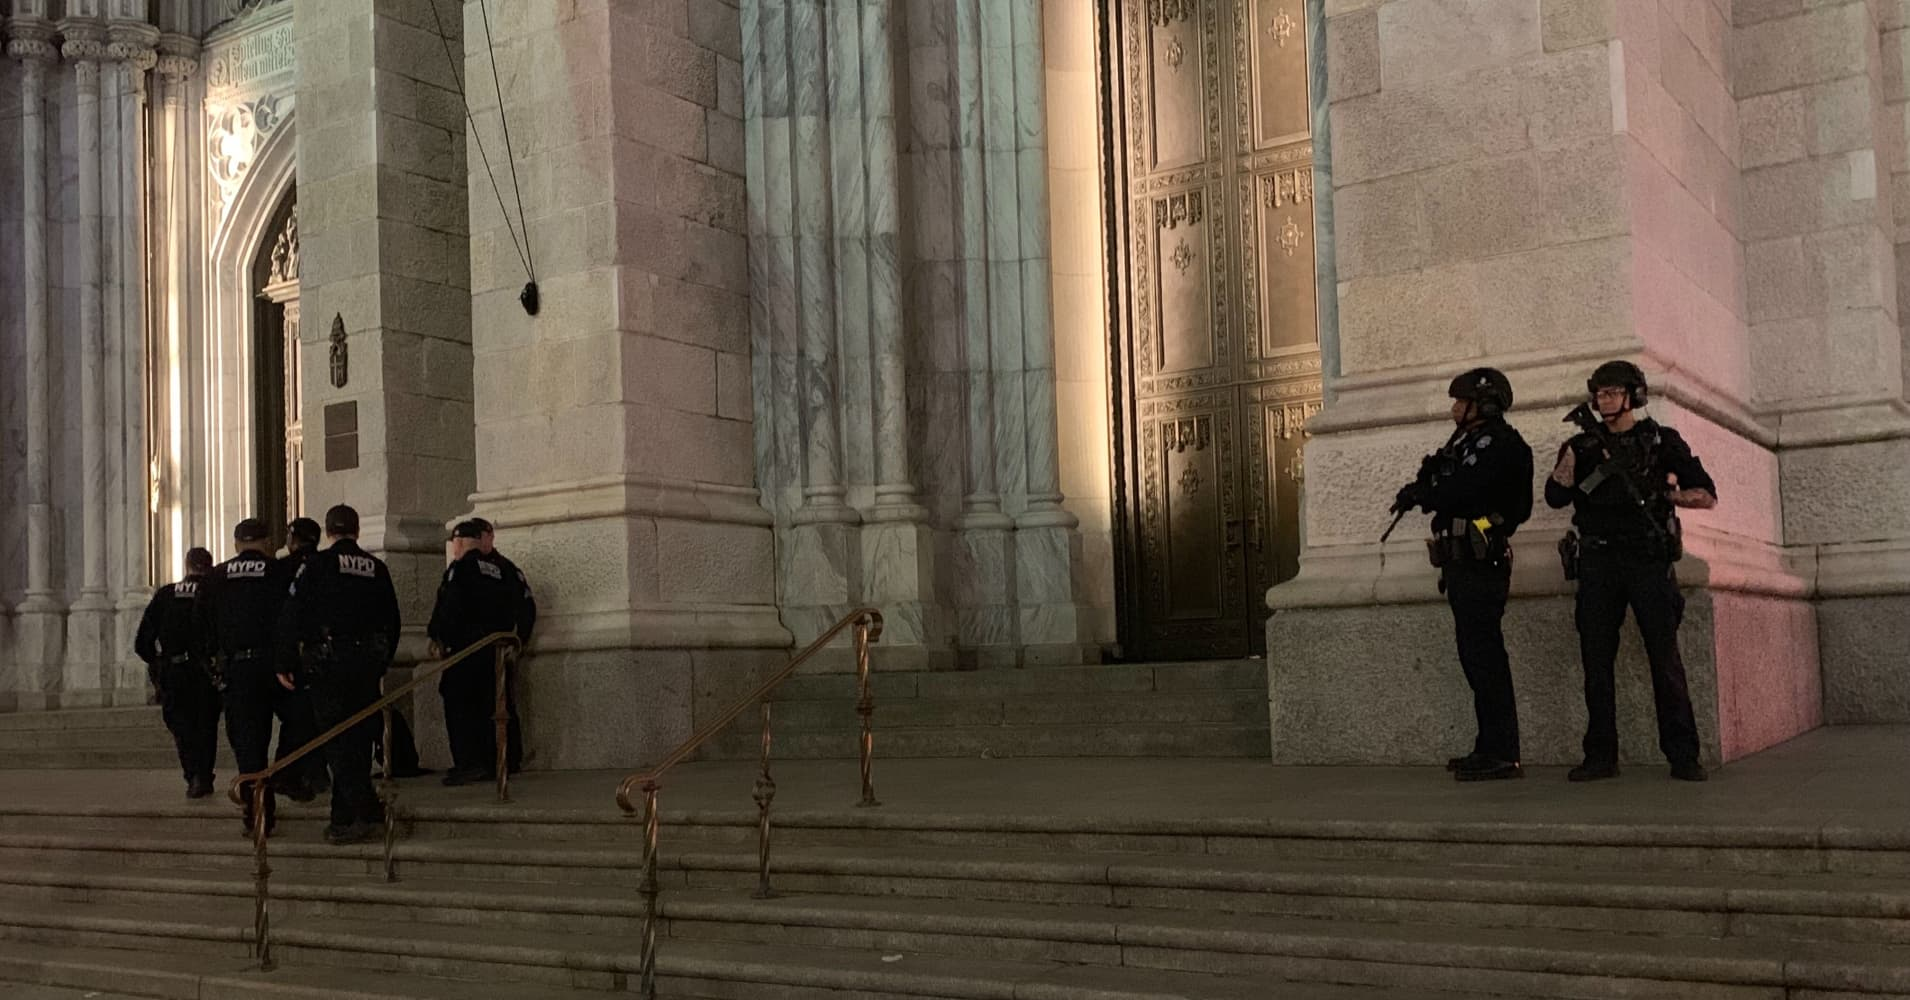 Man with gas cans inside New York's St. Patrick's Cathedral taken into custody by NYPD